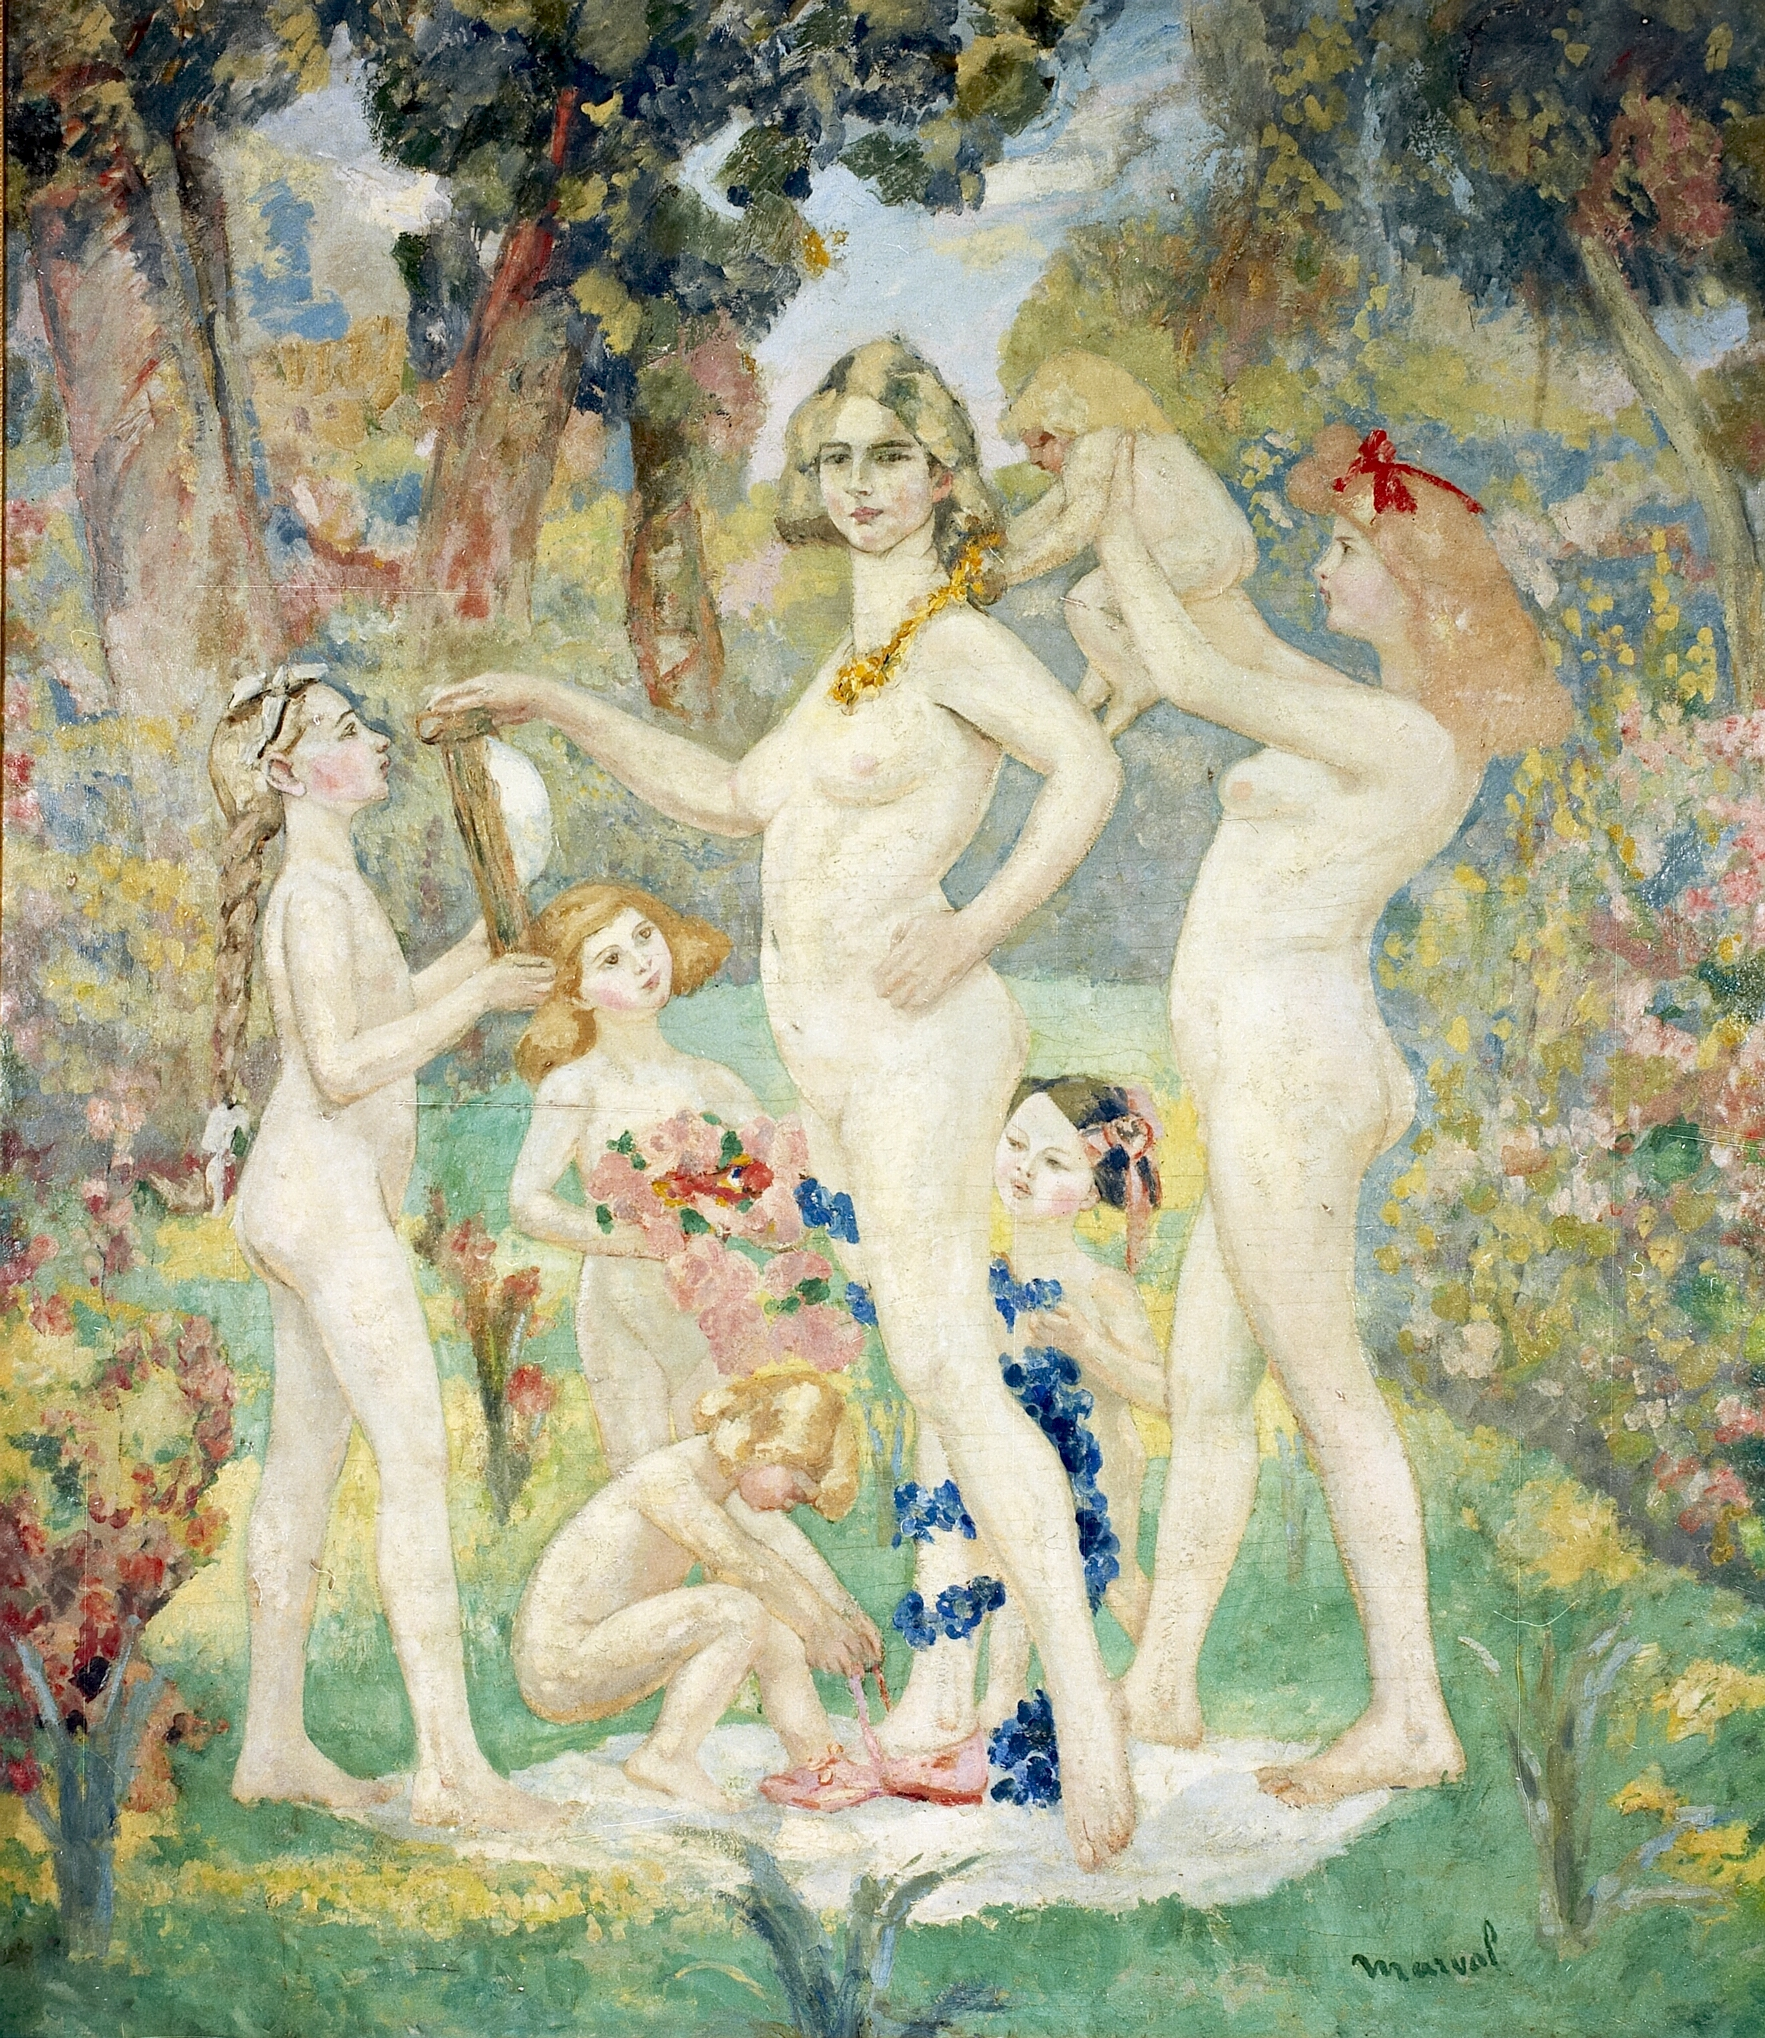 La Toilette du Printemps, Jacqueline Marval. Oil on canvas, 225 cm x 175 cm. Private collection, Grenoble.